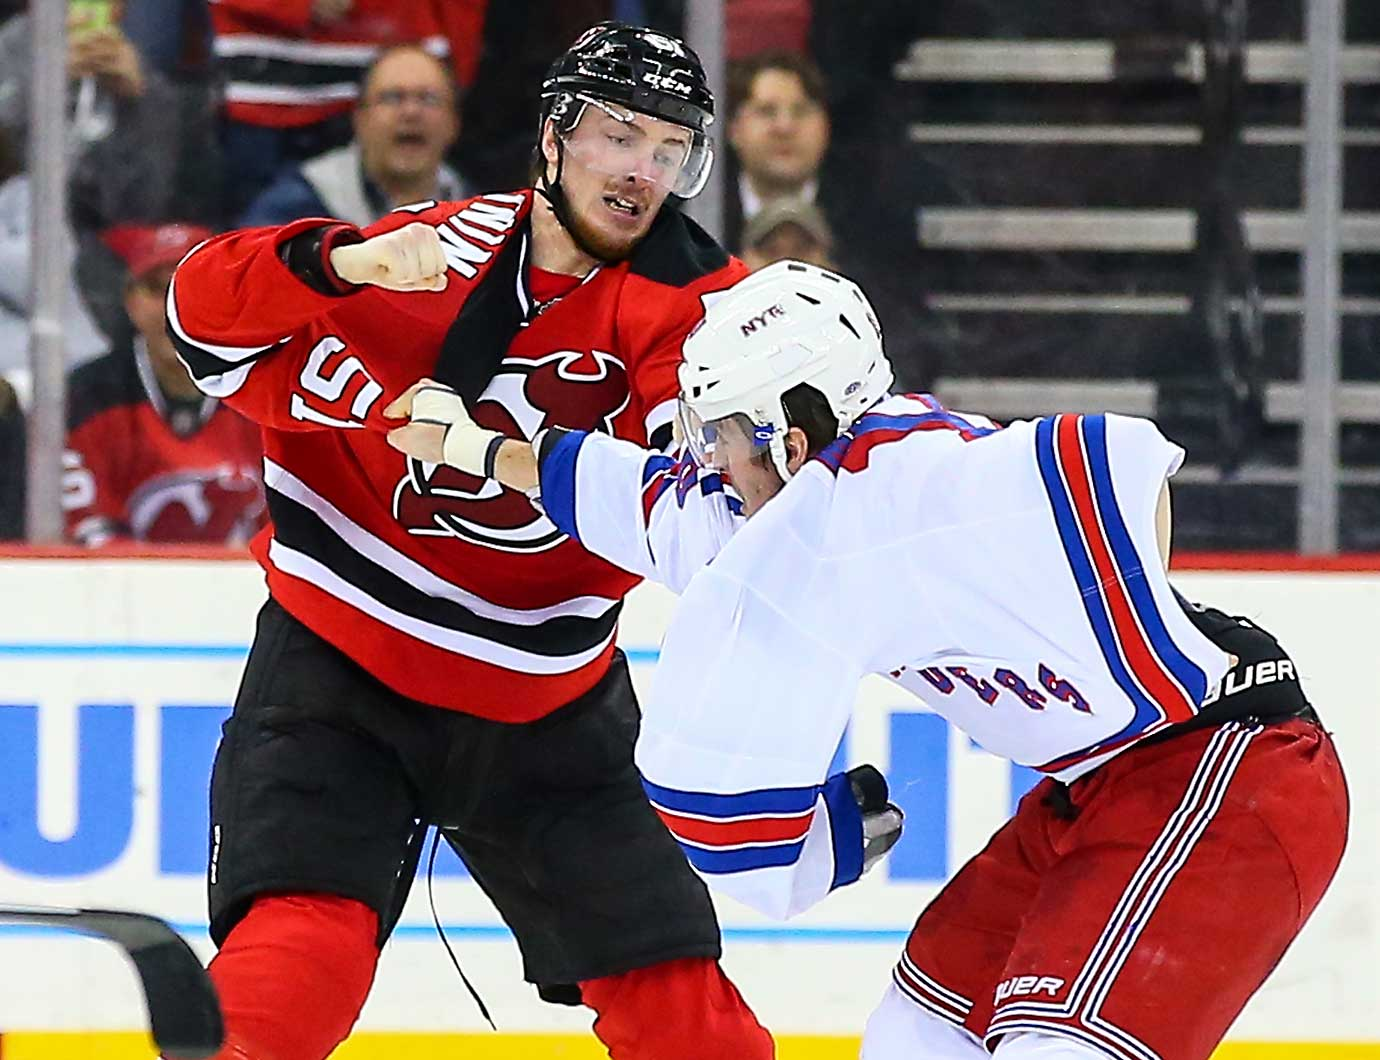 New Jersey Devils center Sergey Kalinin (51) fights with New York Rangers center J.T. Miller.